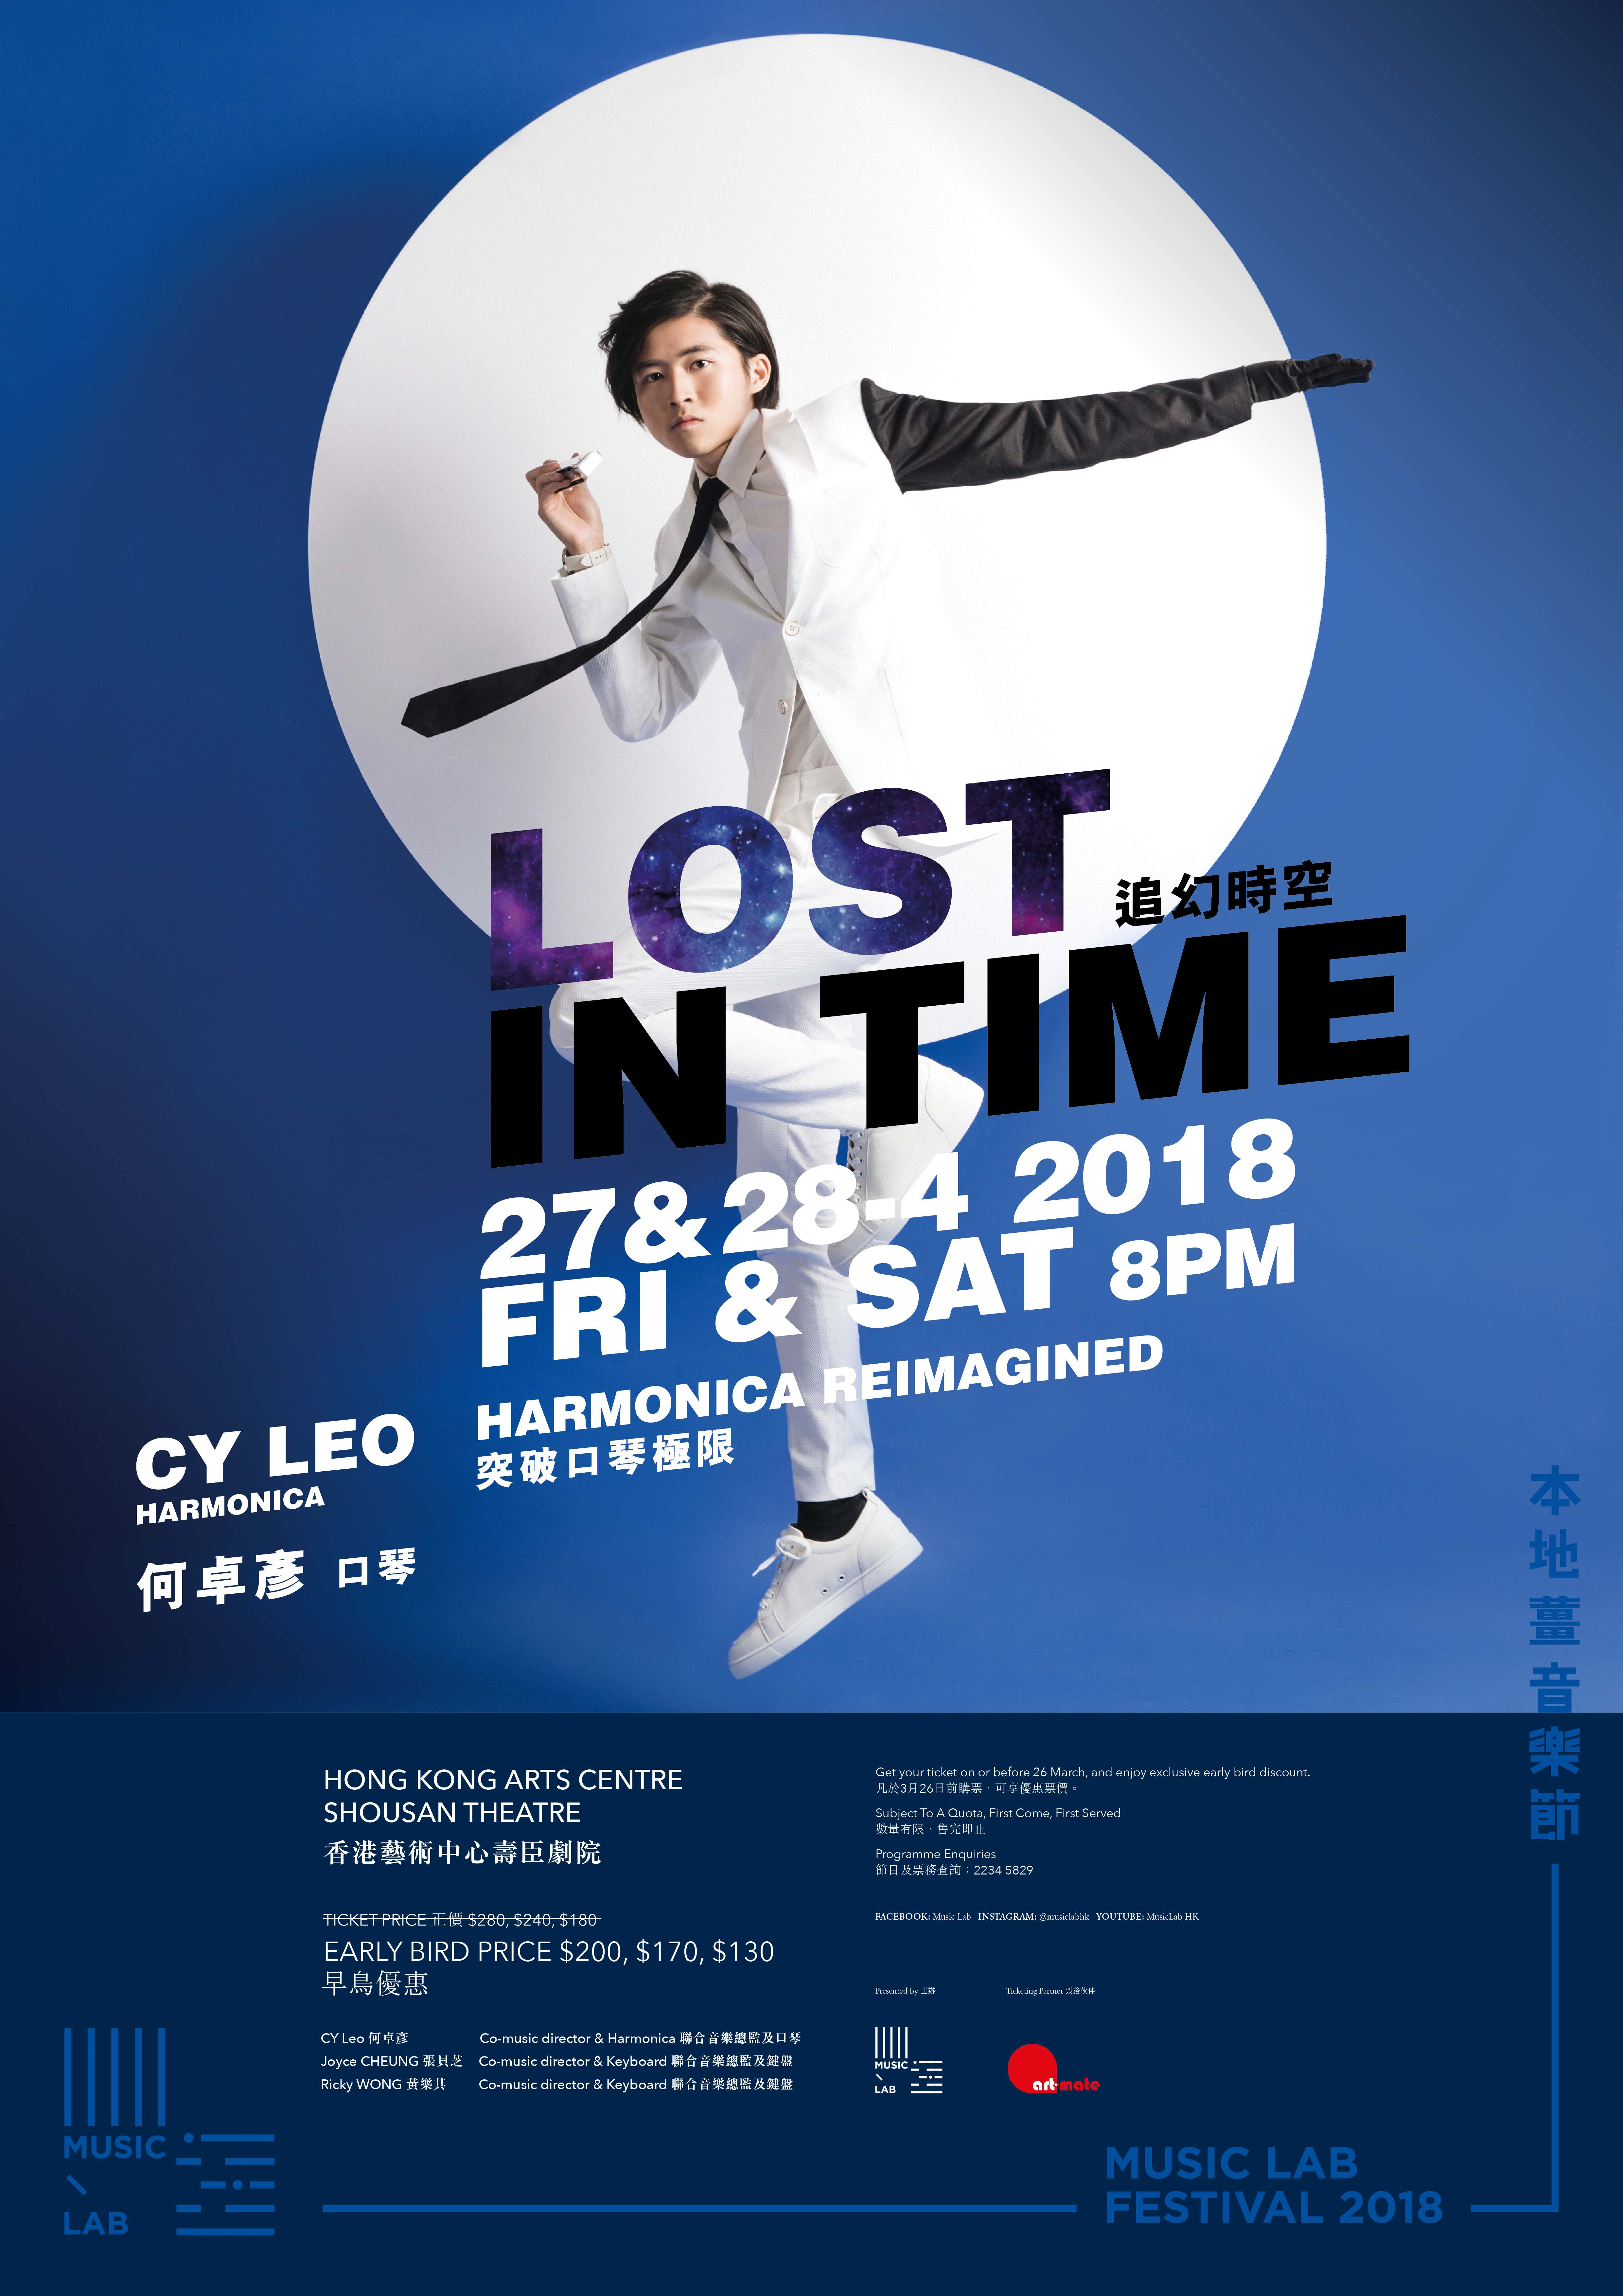 Lost in Time runs from April 27 to 28